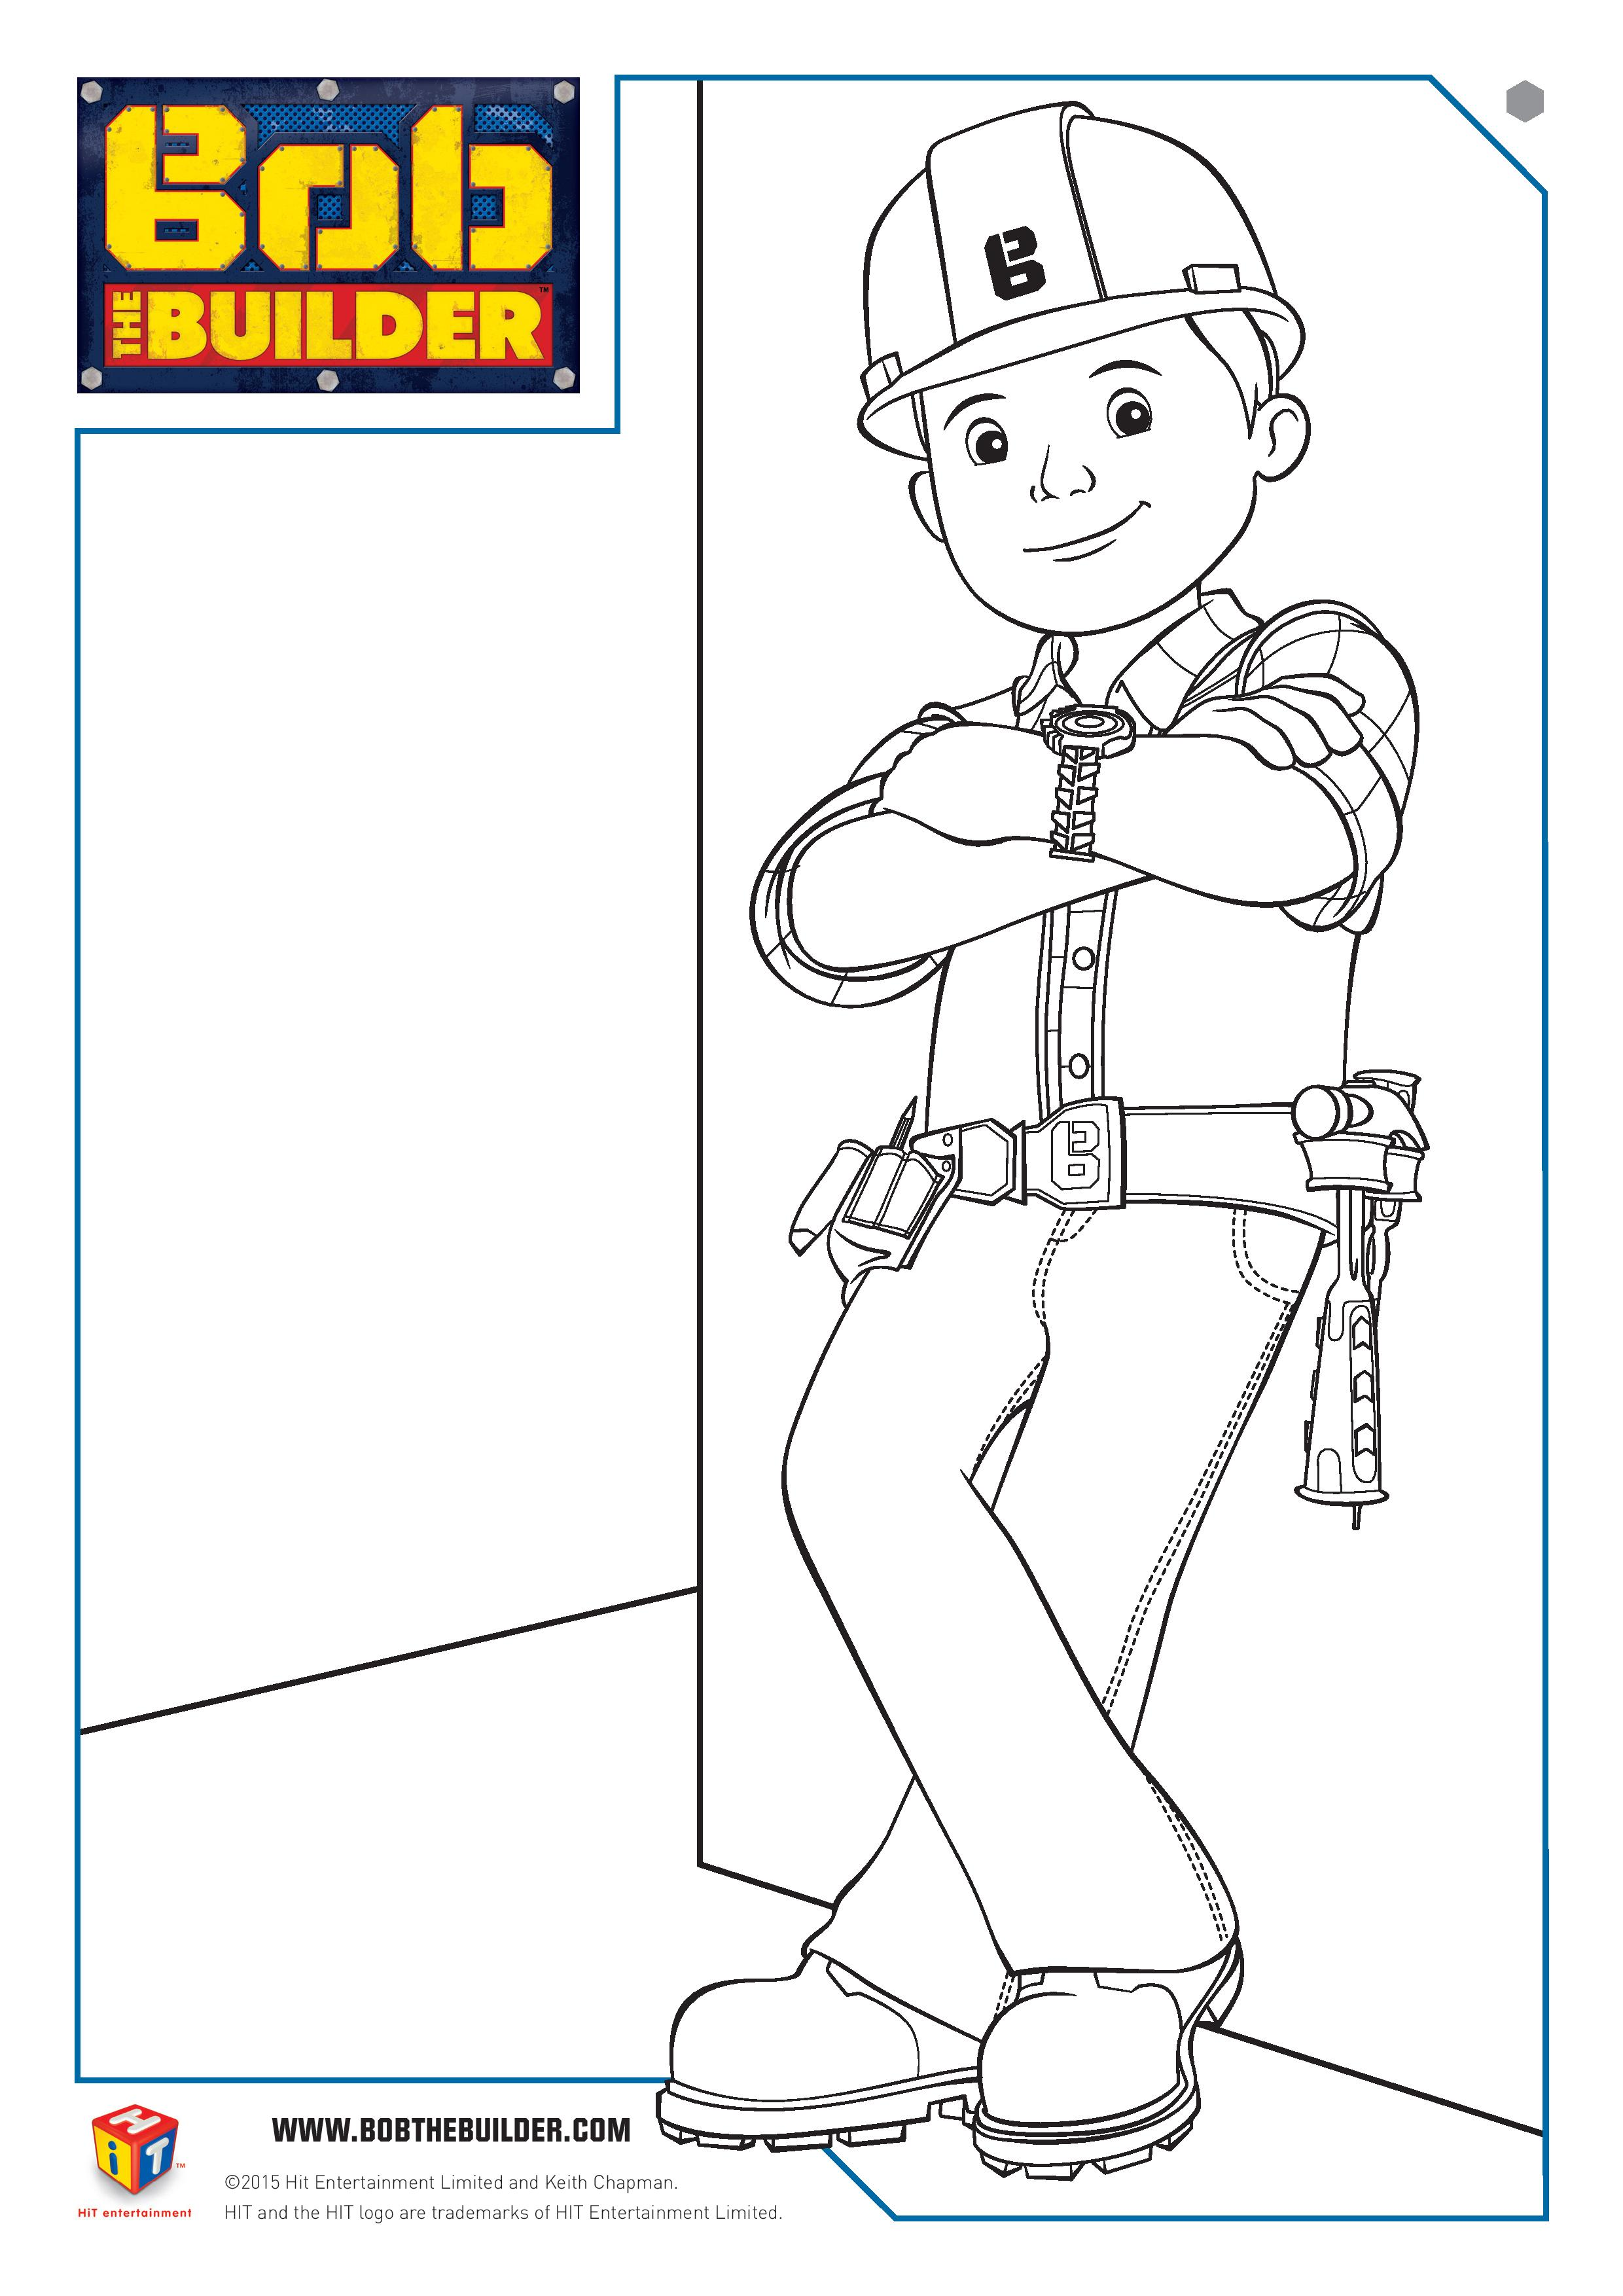 ... page free printable for kids, with the new version of Bob the Builder